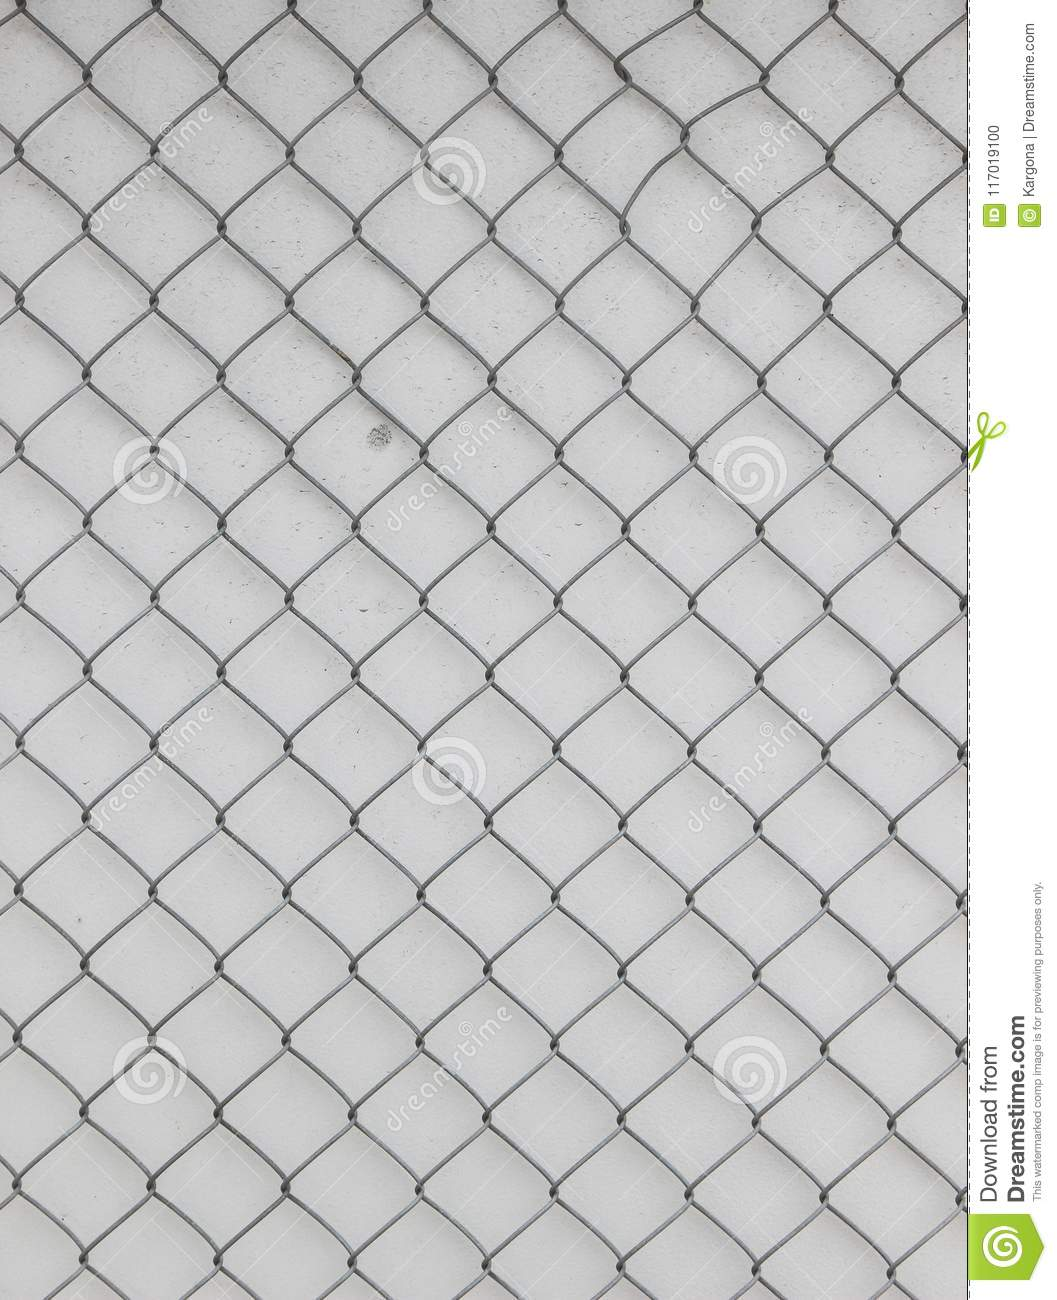 Surface Of A Wire Netting With Diamond-shaped Elements In Front Of A ...